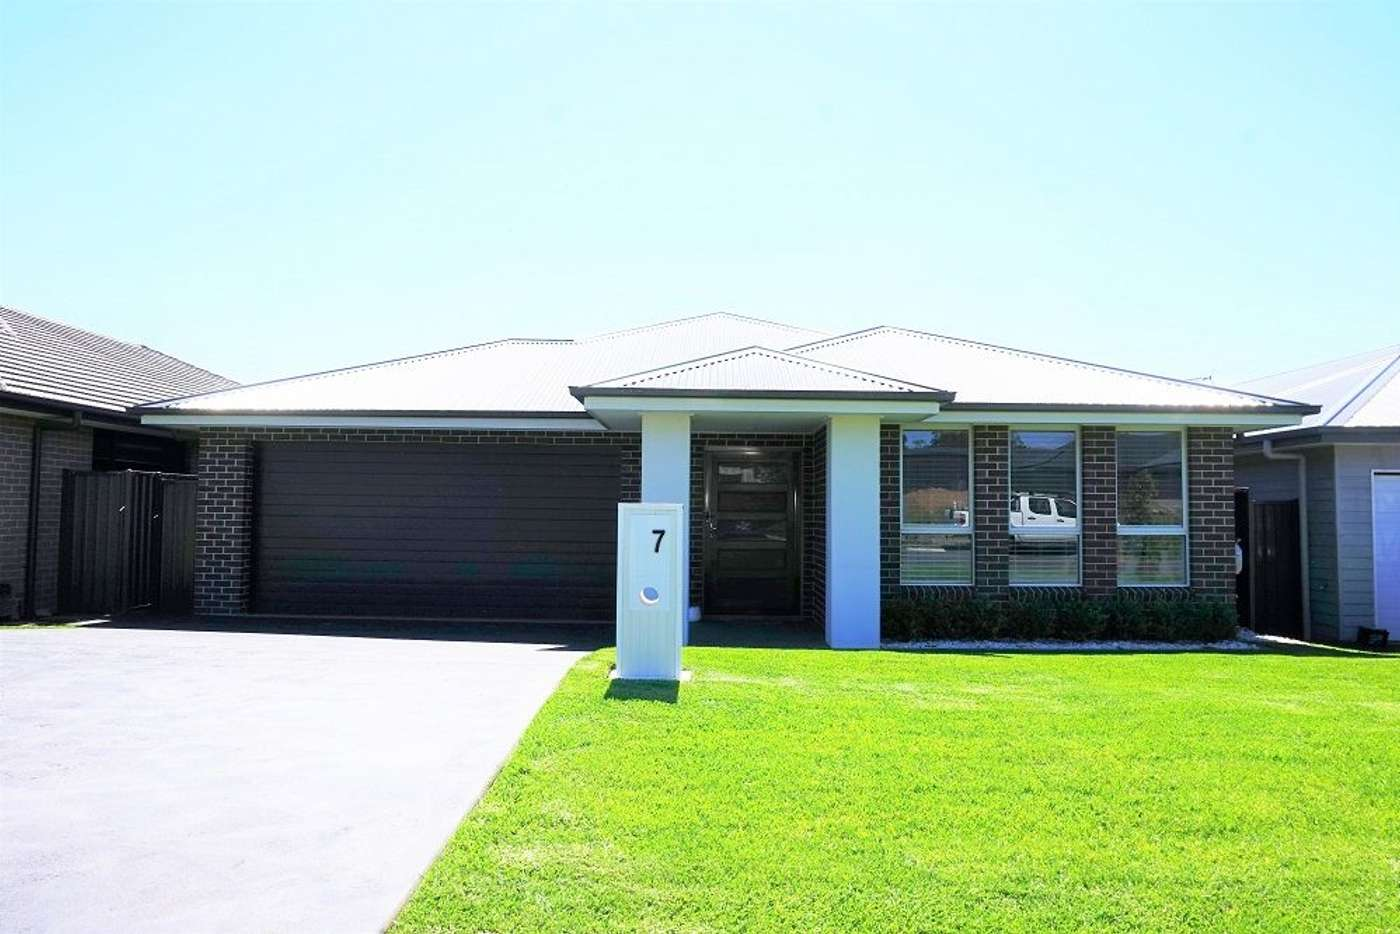 Main view of Homely house listing, 7 Chalker Street, Thirlmere NSW 2572